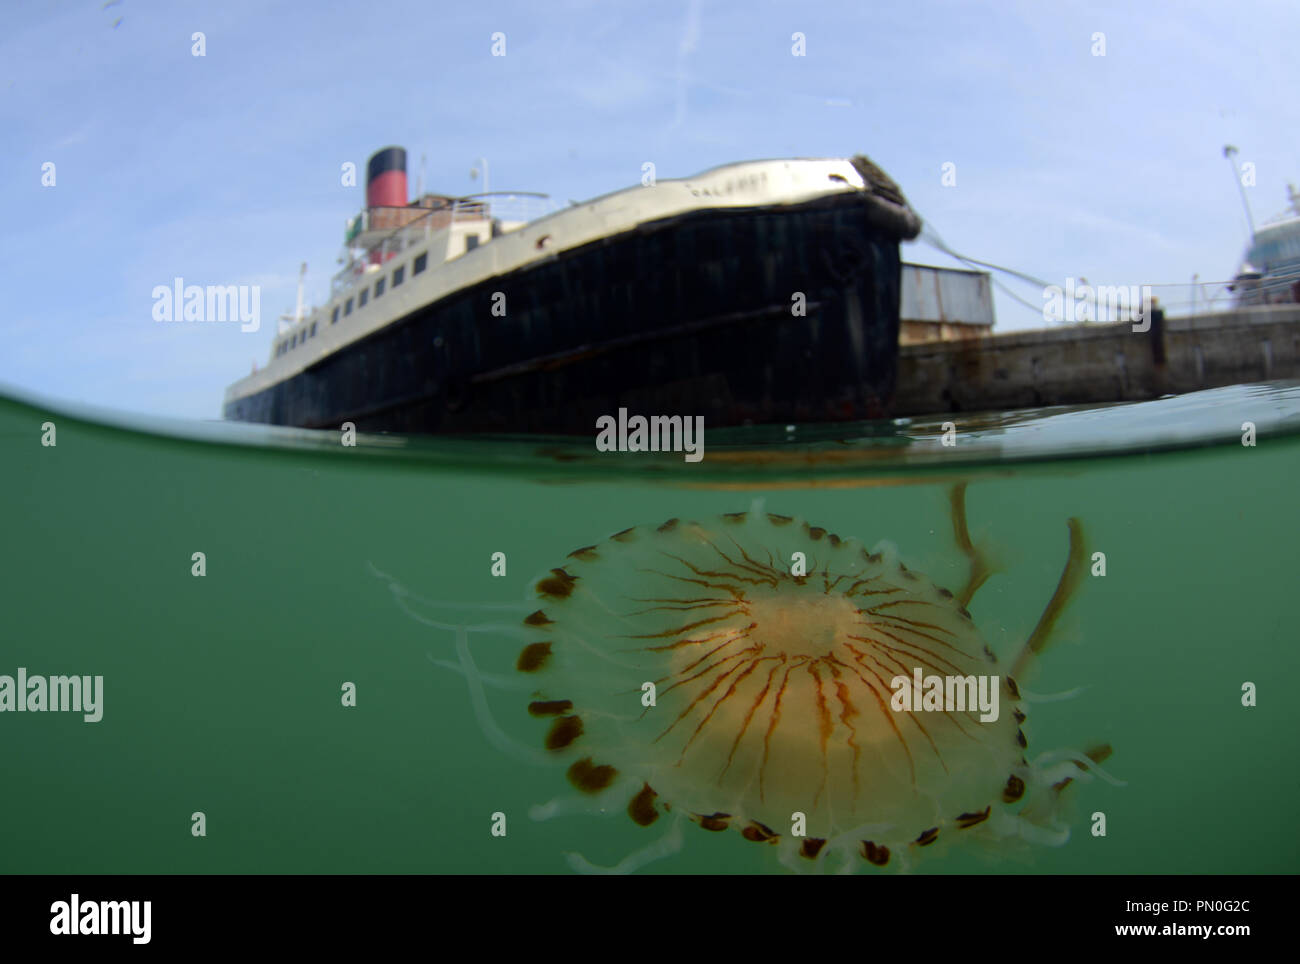 Split level shot of a compass jellyfish in the Port of Southampton near the historic steam ship the Calshot. - Stock Image